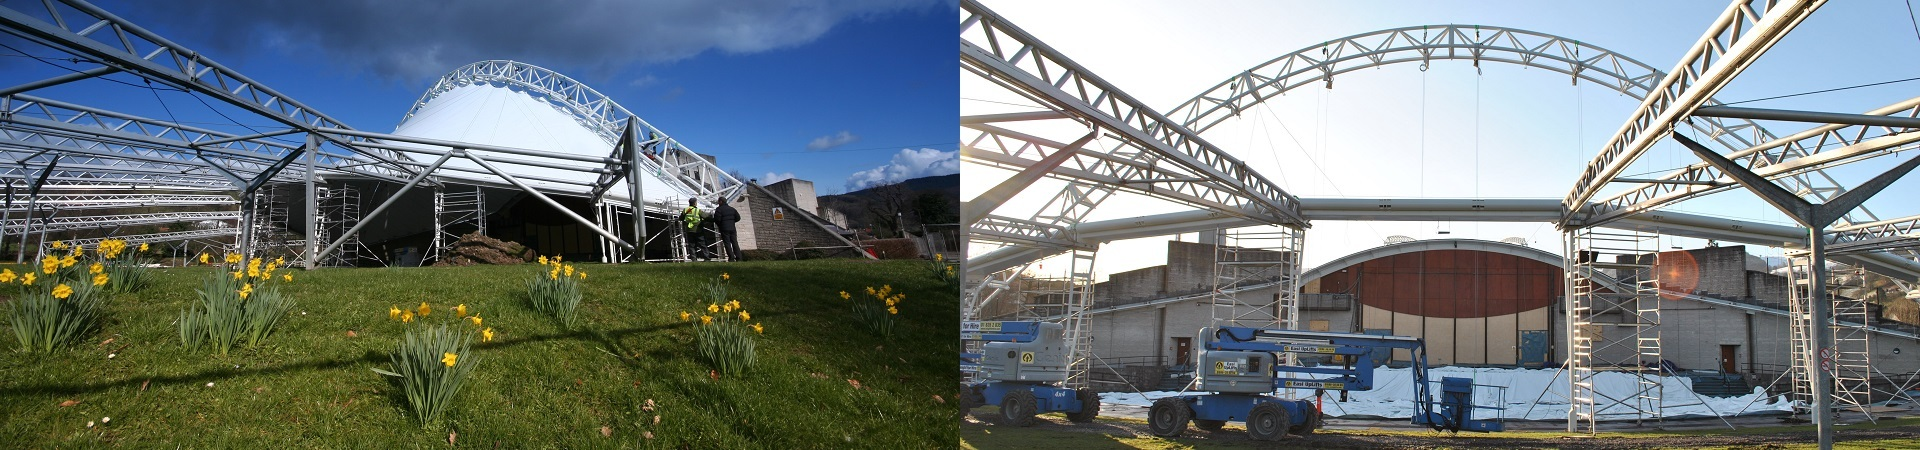 Royal International Pavilion: Llangollen | Wynne Construction